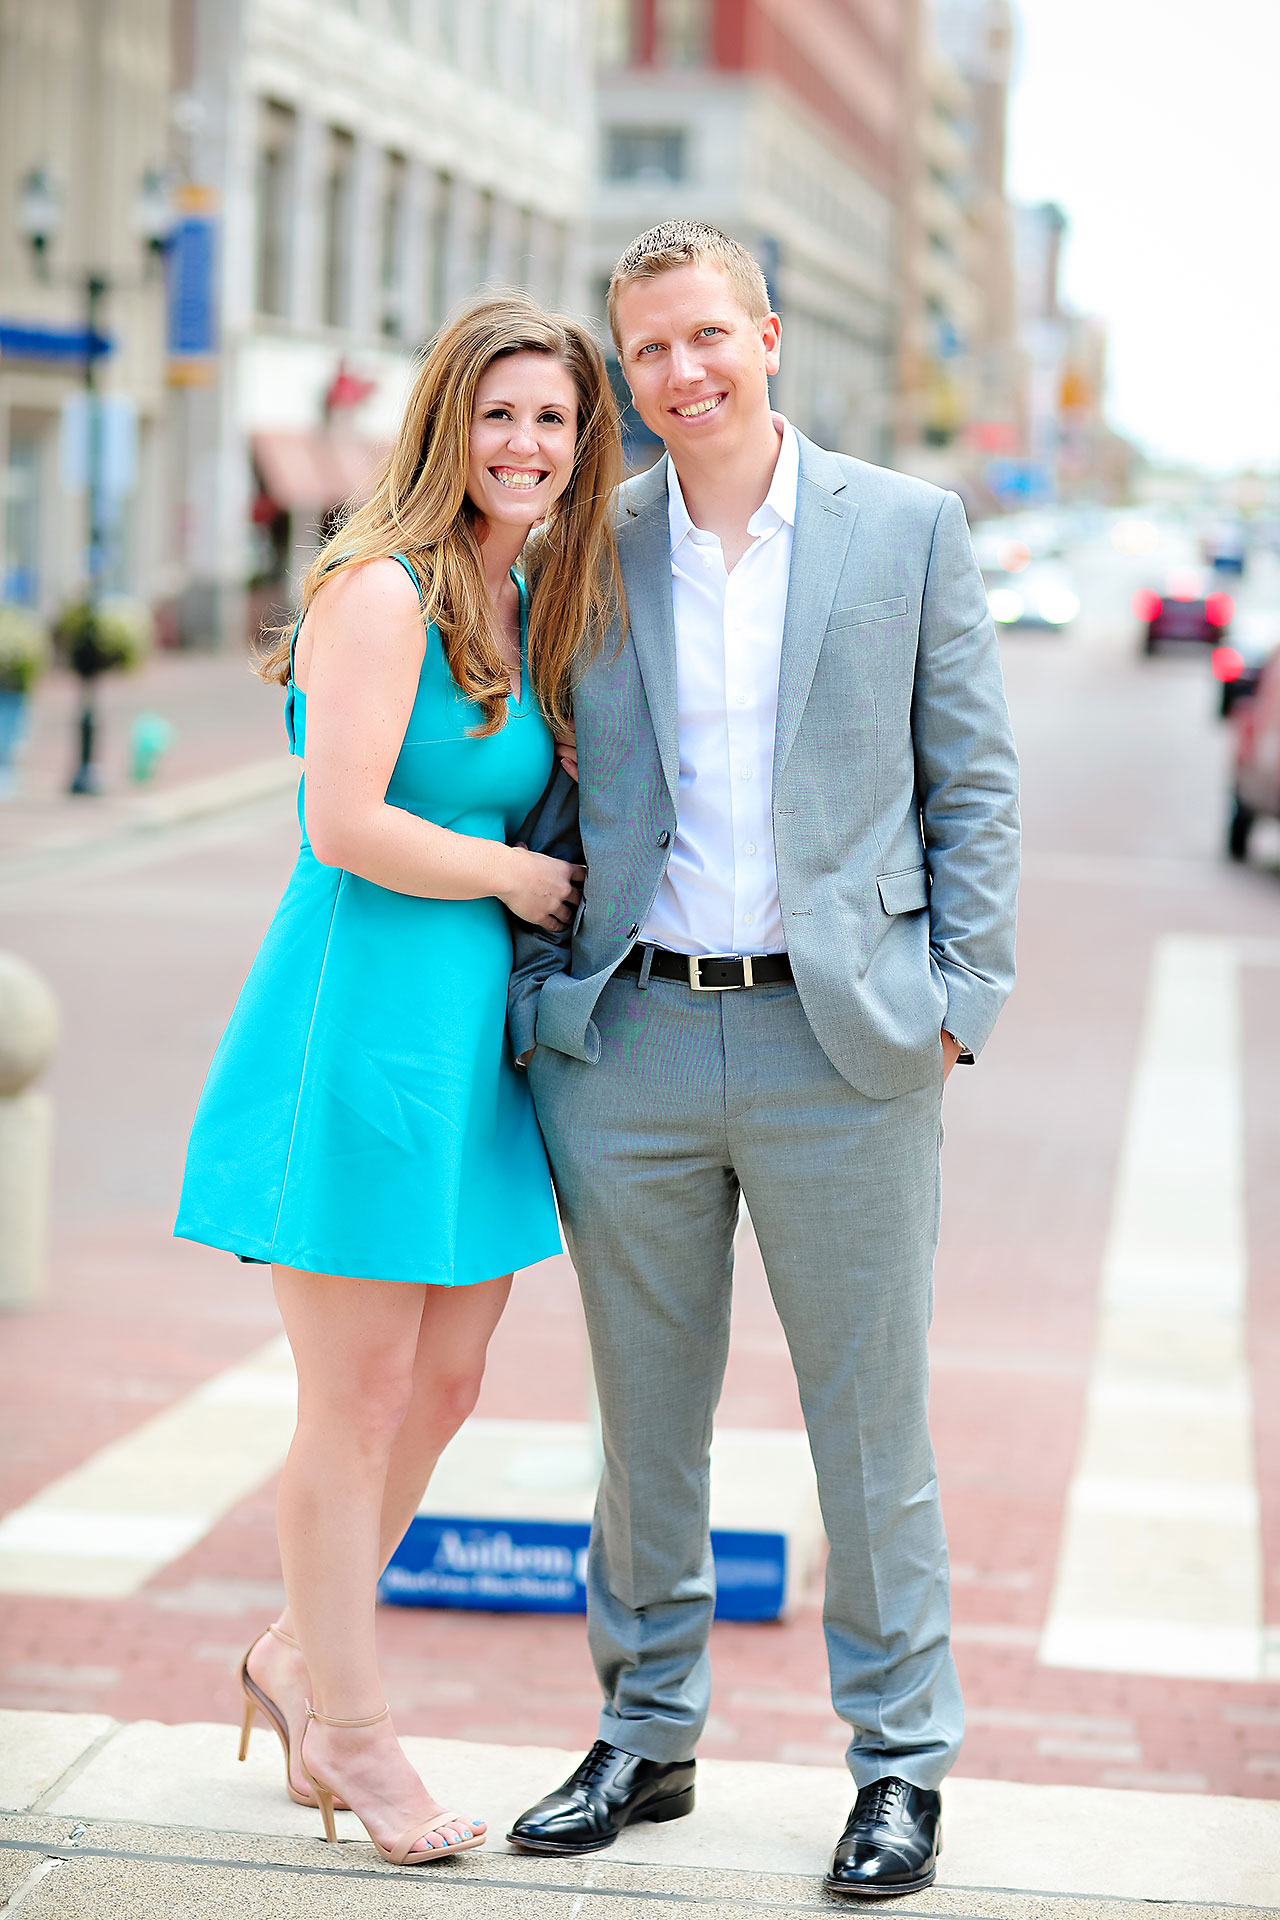 Chelsea Jeff Downtown Indy Engagement Session 125